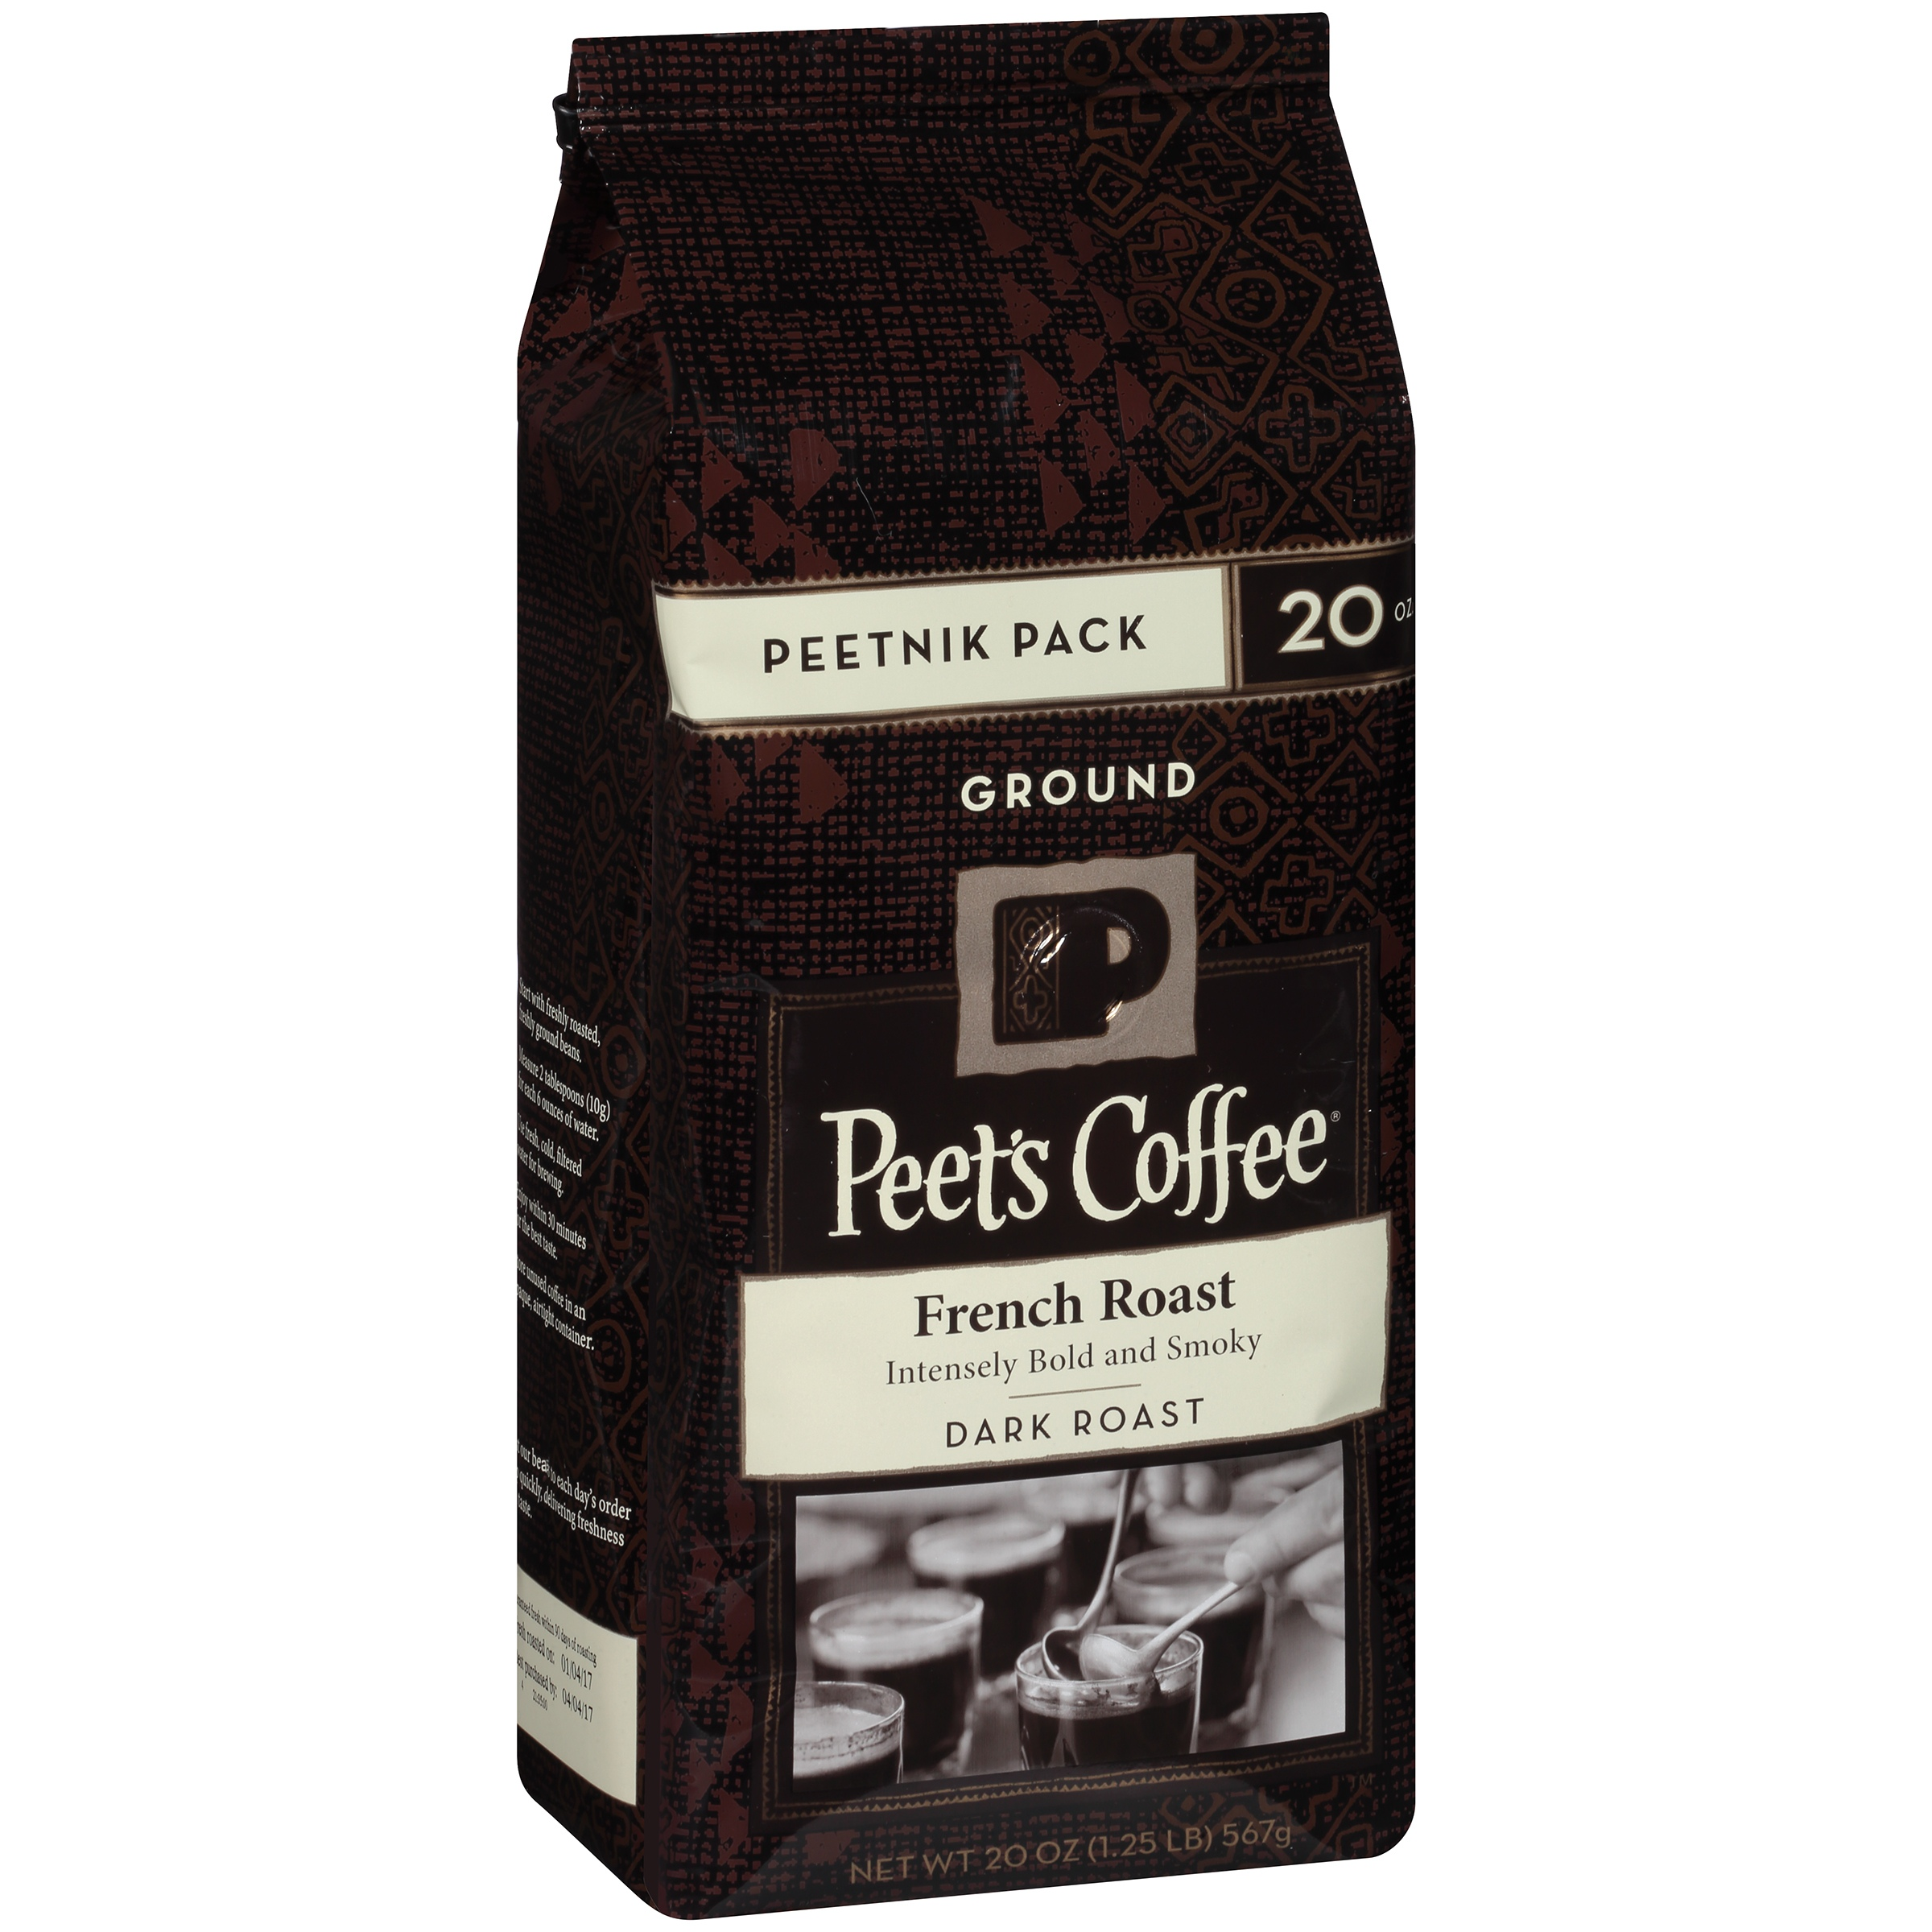 Peet's Coffee French Dark Roast Ground Coffee, 20 oz